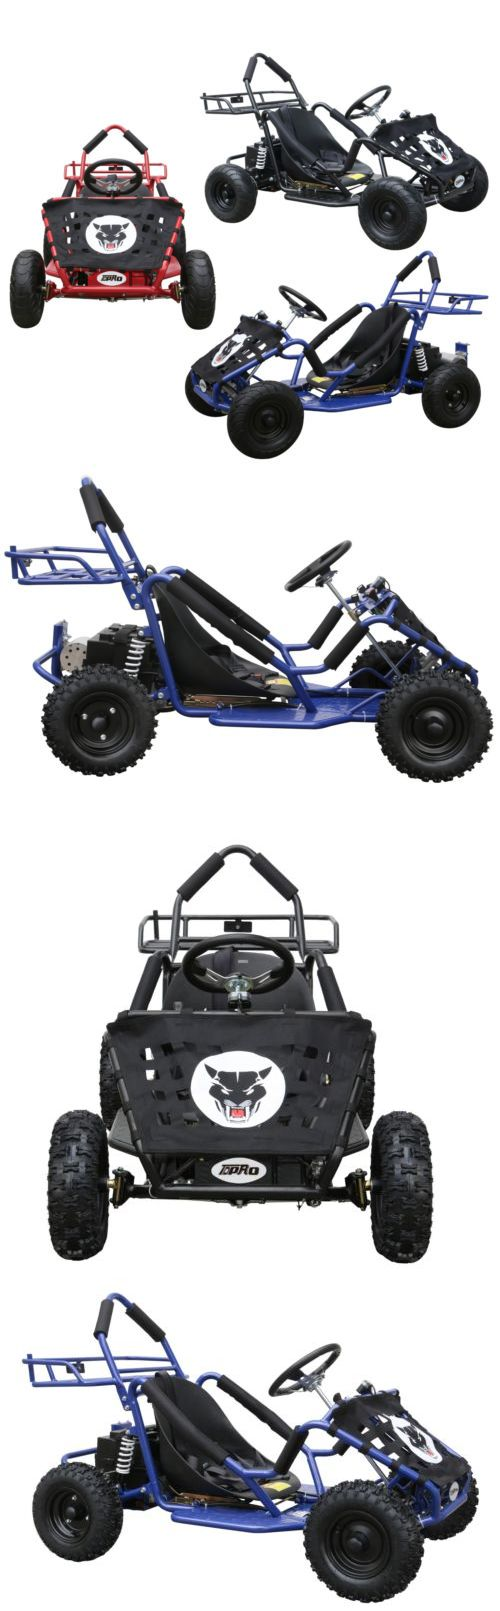 Complete Go-Karts and Frames 64656: 1000W Go Cart Kart Electric Dune Buggy Kid Ride On Car Off Road One Seat Outdoor -> BUY IT NOW ONLY: $749.99 on eBay!